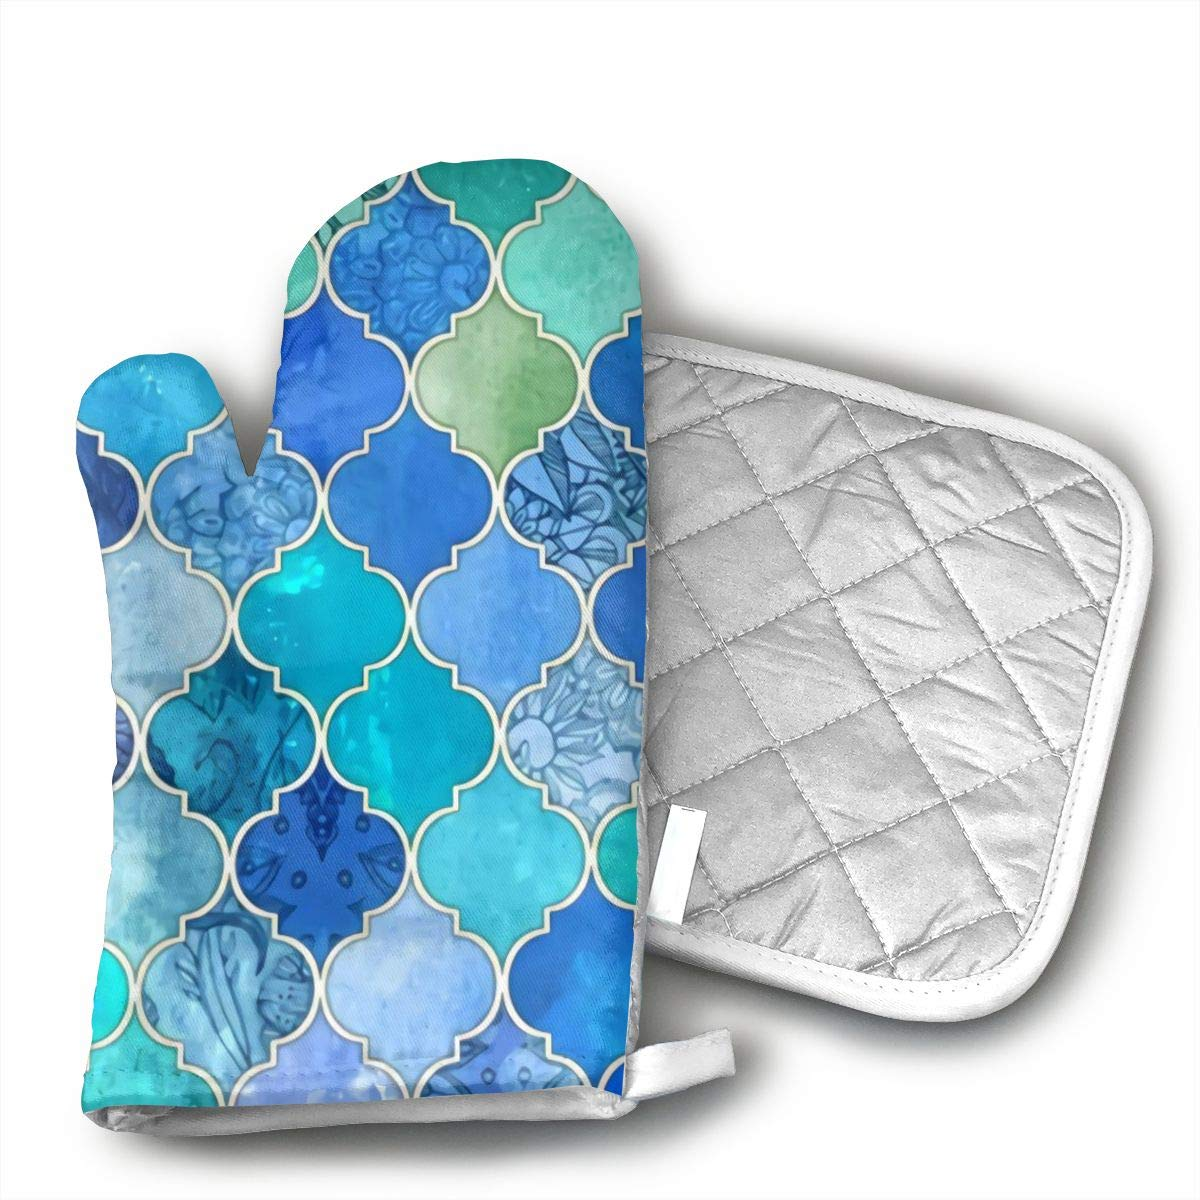 not Oven Mitts and Potholders Cobalt Blue and Aqua Decorative Moroccan Tiles Non-Slip Grip Heat Resistant Oven Gloves BBQ Cooking Baking Grilling